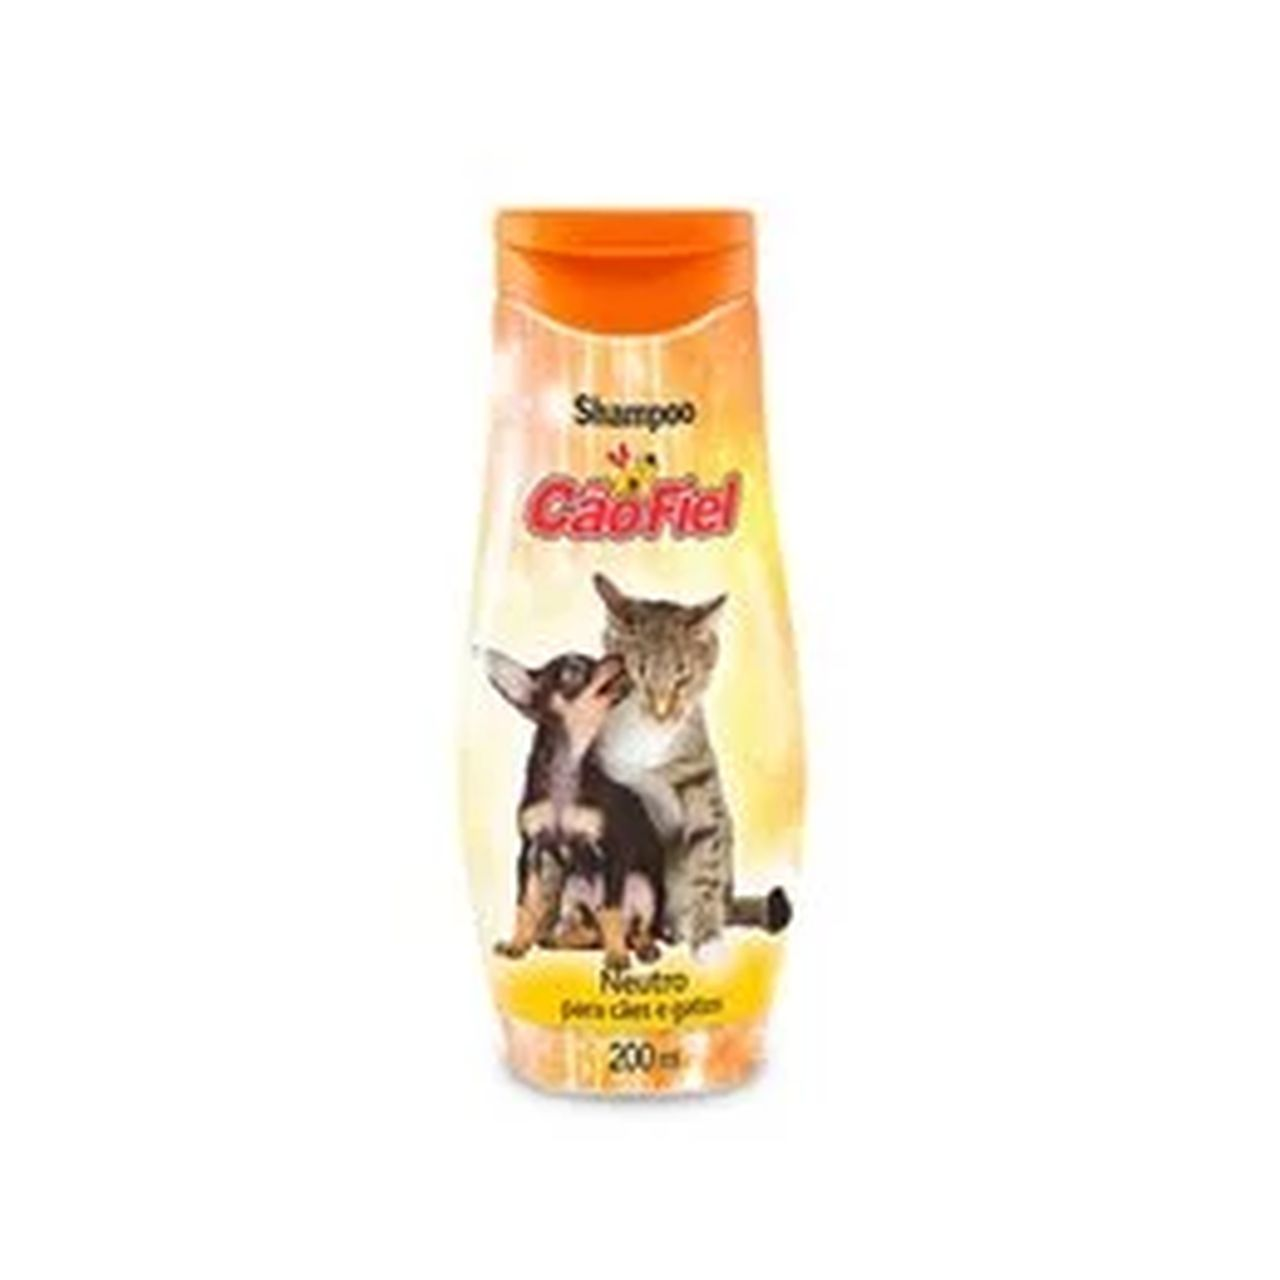 Shampoo Cão Fiel Neutro - 200 mL